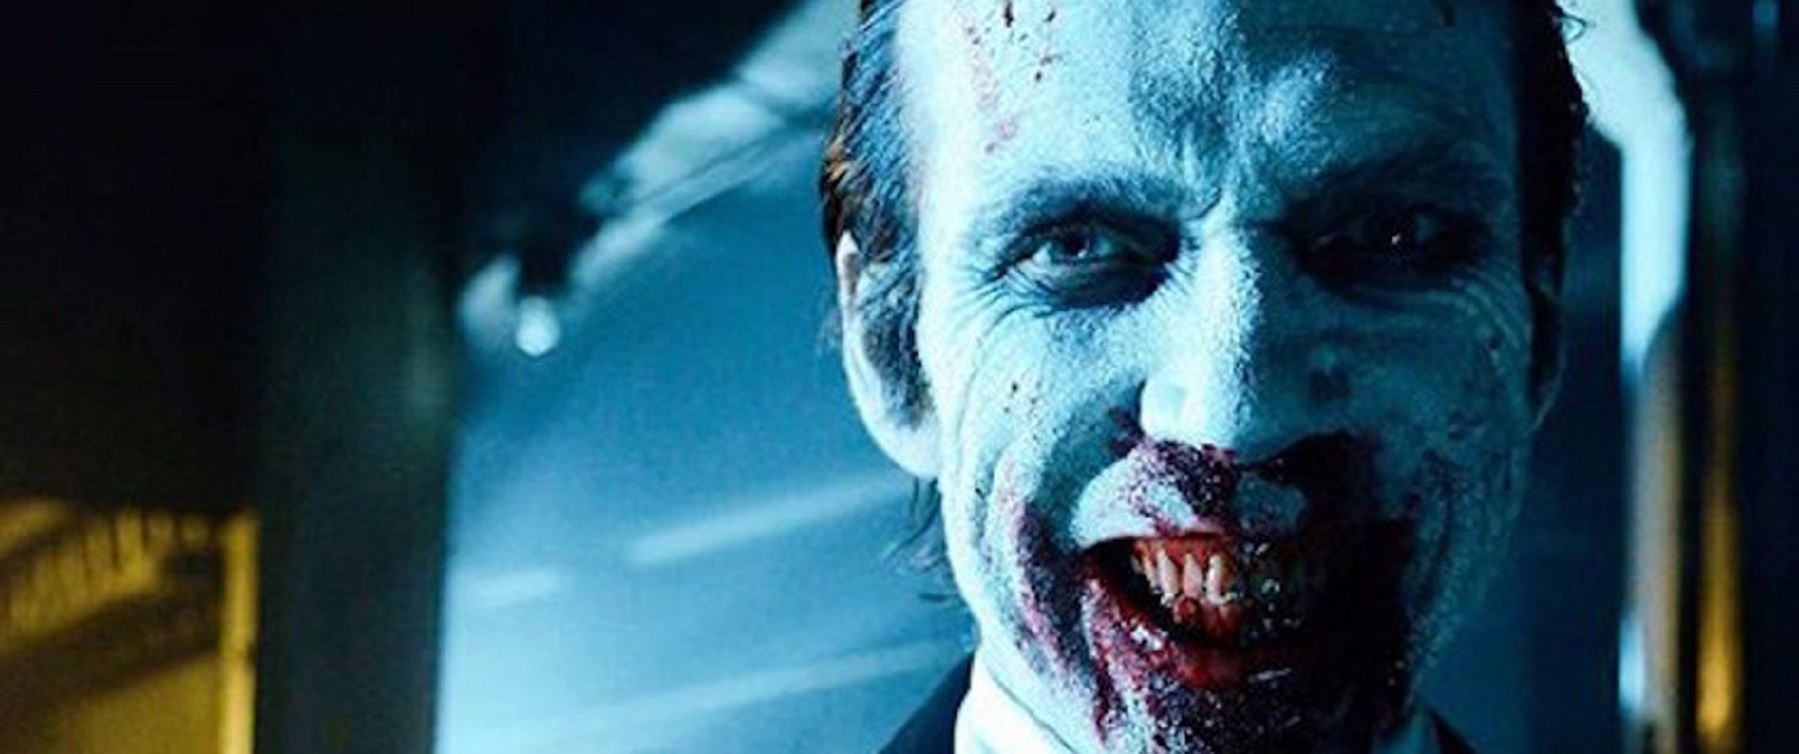 Richard Brake as Doom-Head in 31 (2016)